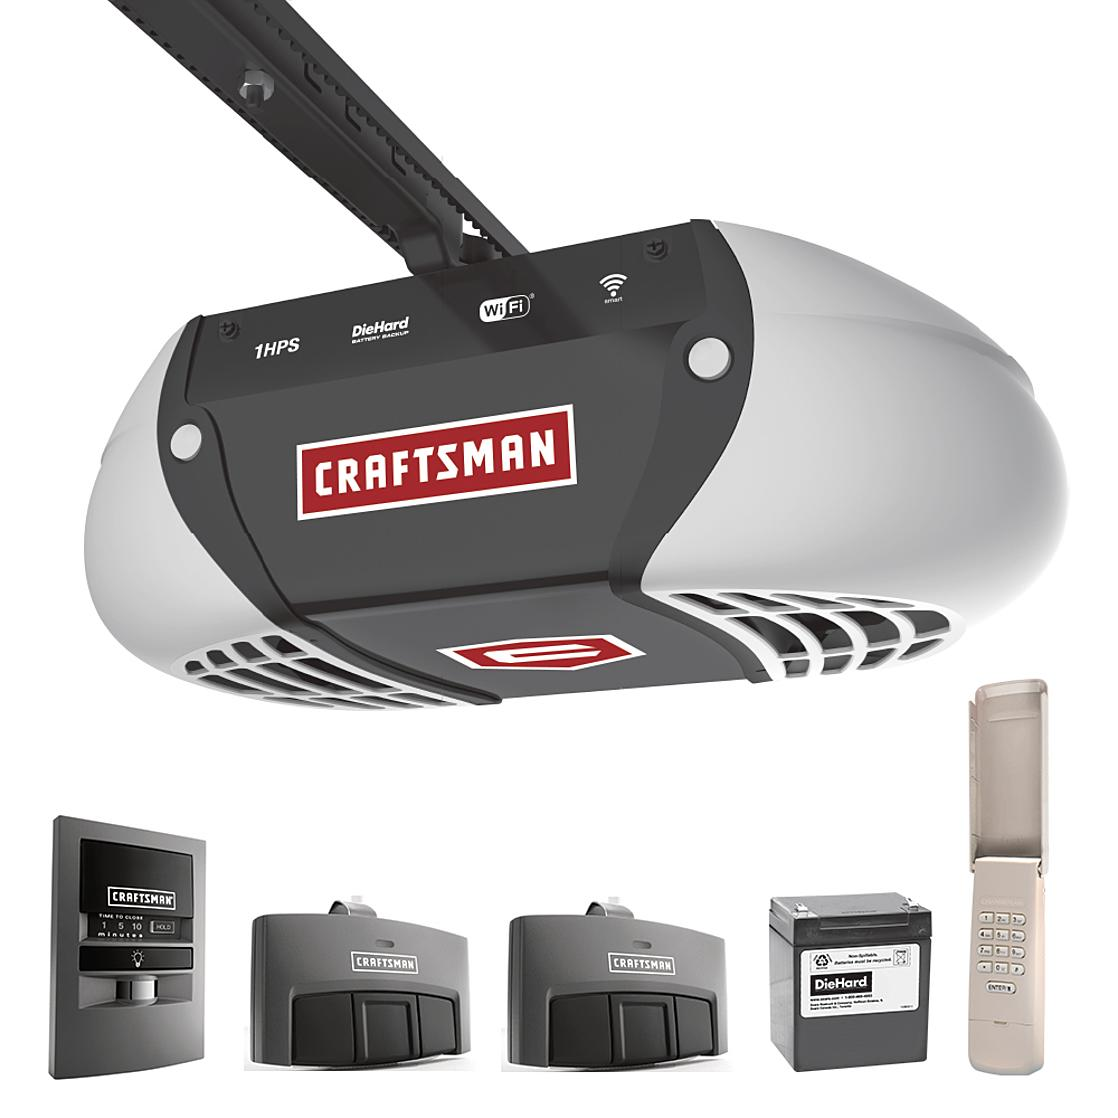 Craftsman 1 HP Ultra-Quiet Belt Drive Garage Door Opener + $100 in Points